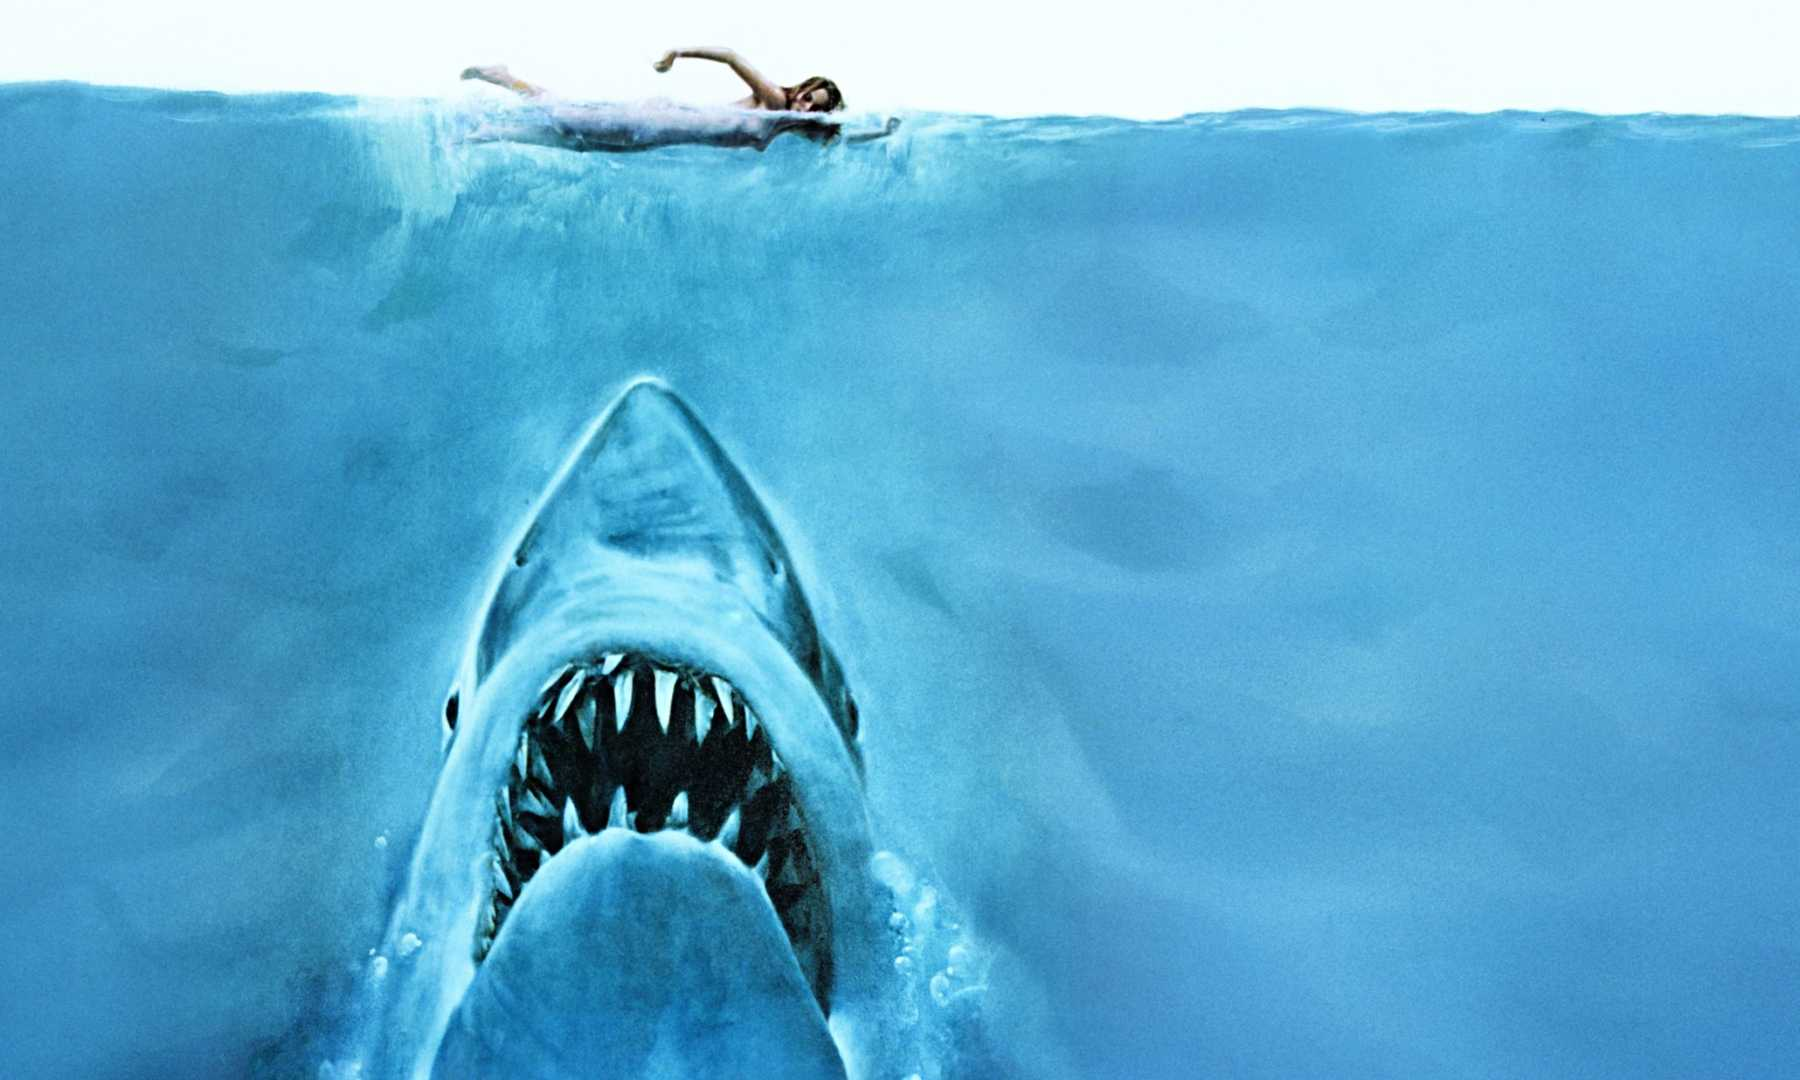 Pop 10 Scenes From 'Jaws' In Chronological Order | Jaws